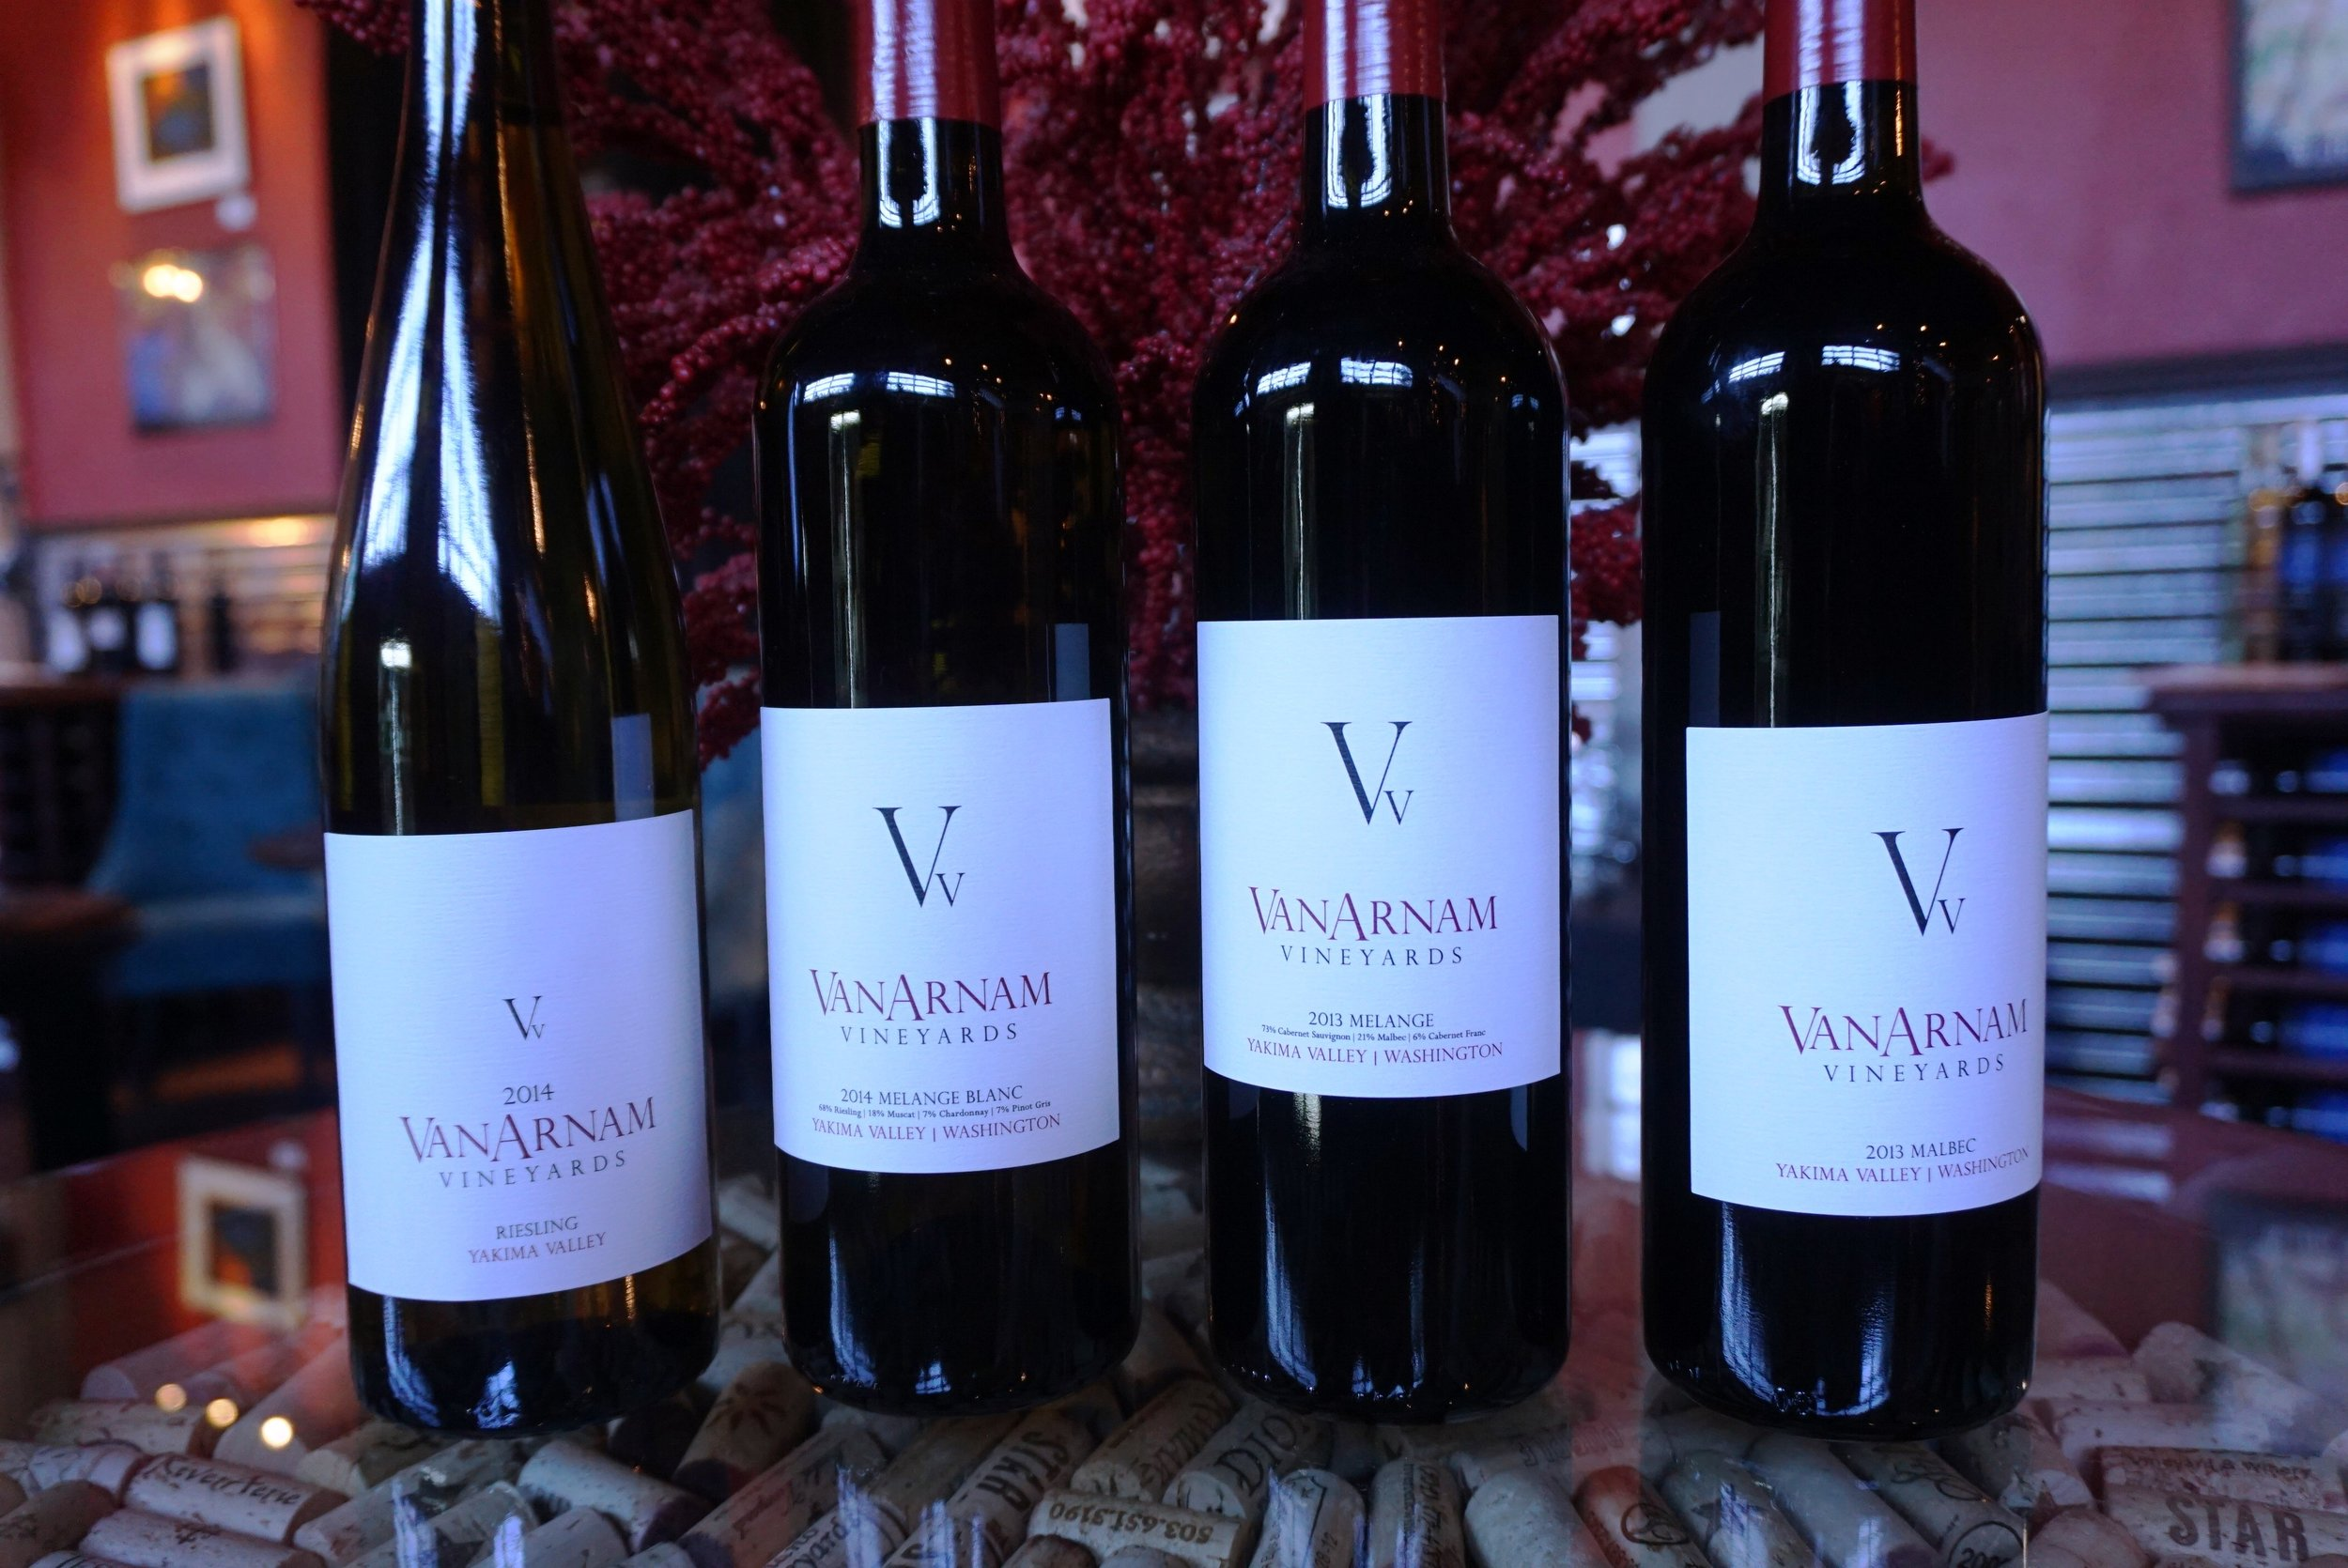 Still considered a young winery, VanArnam Vineyards recently received a 91 from Wine Spectator for their 2013 Melange. Viki Eierdam